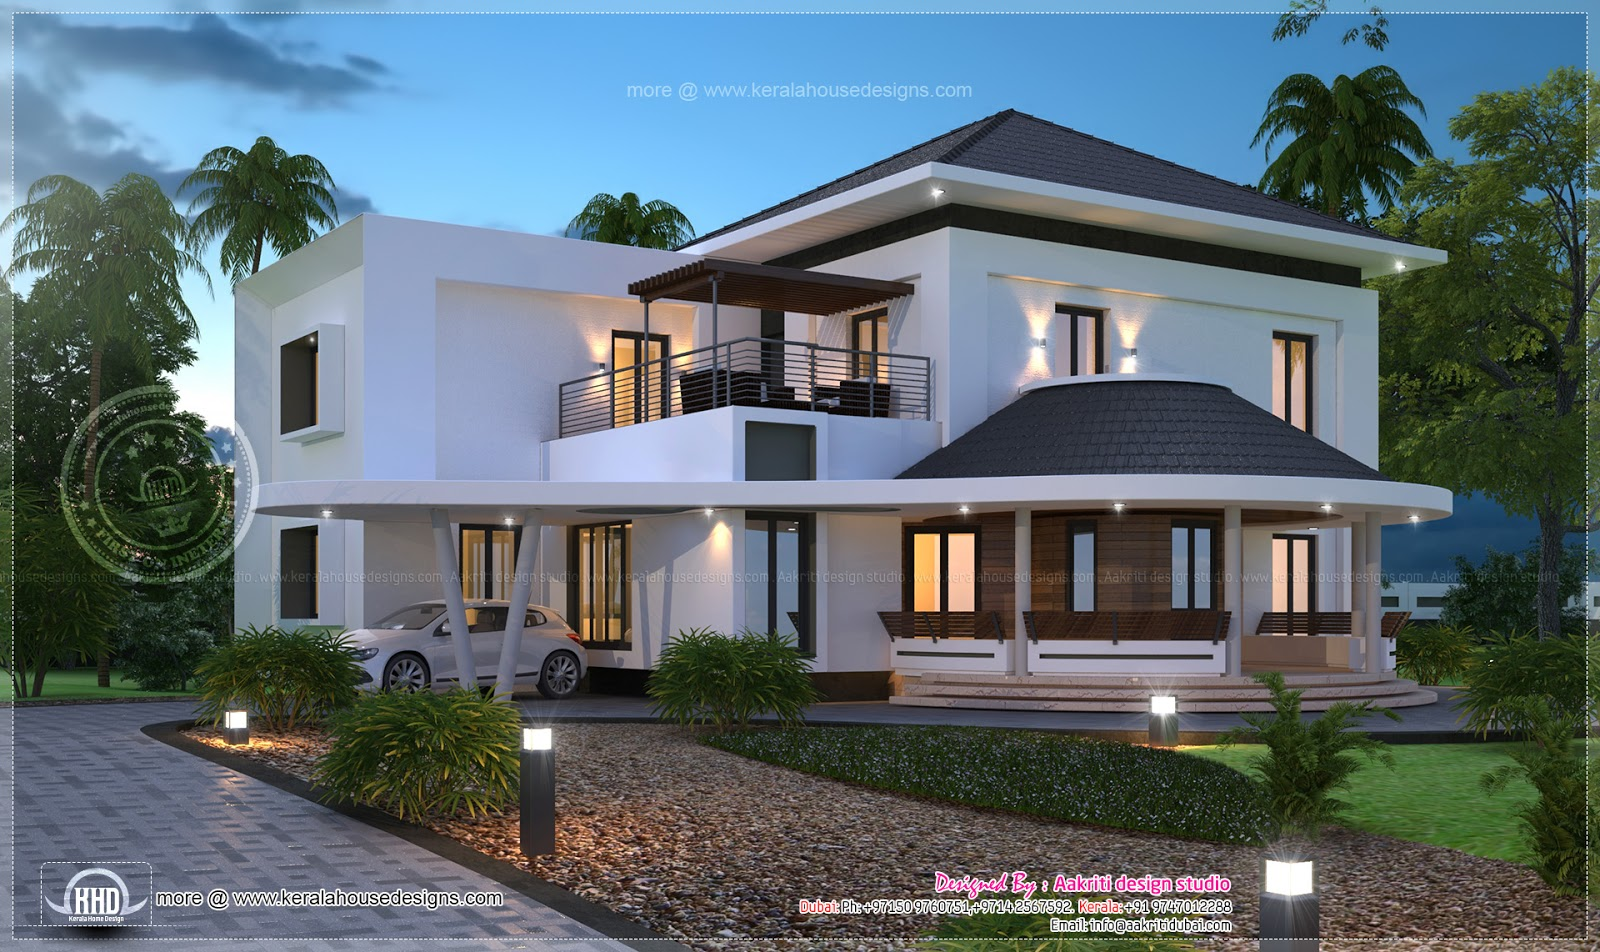 Beautiful 3200 sq ft modern villa exterior home kerala plans for Beautiful modern homes